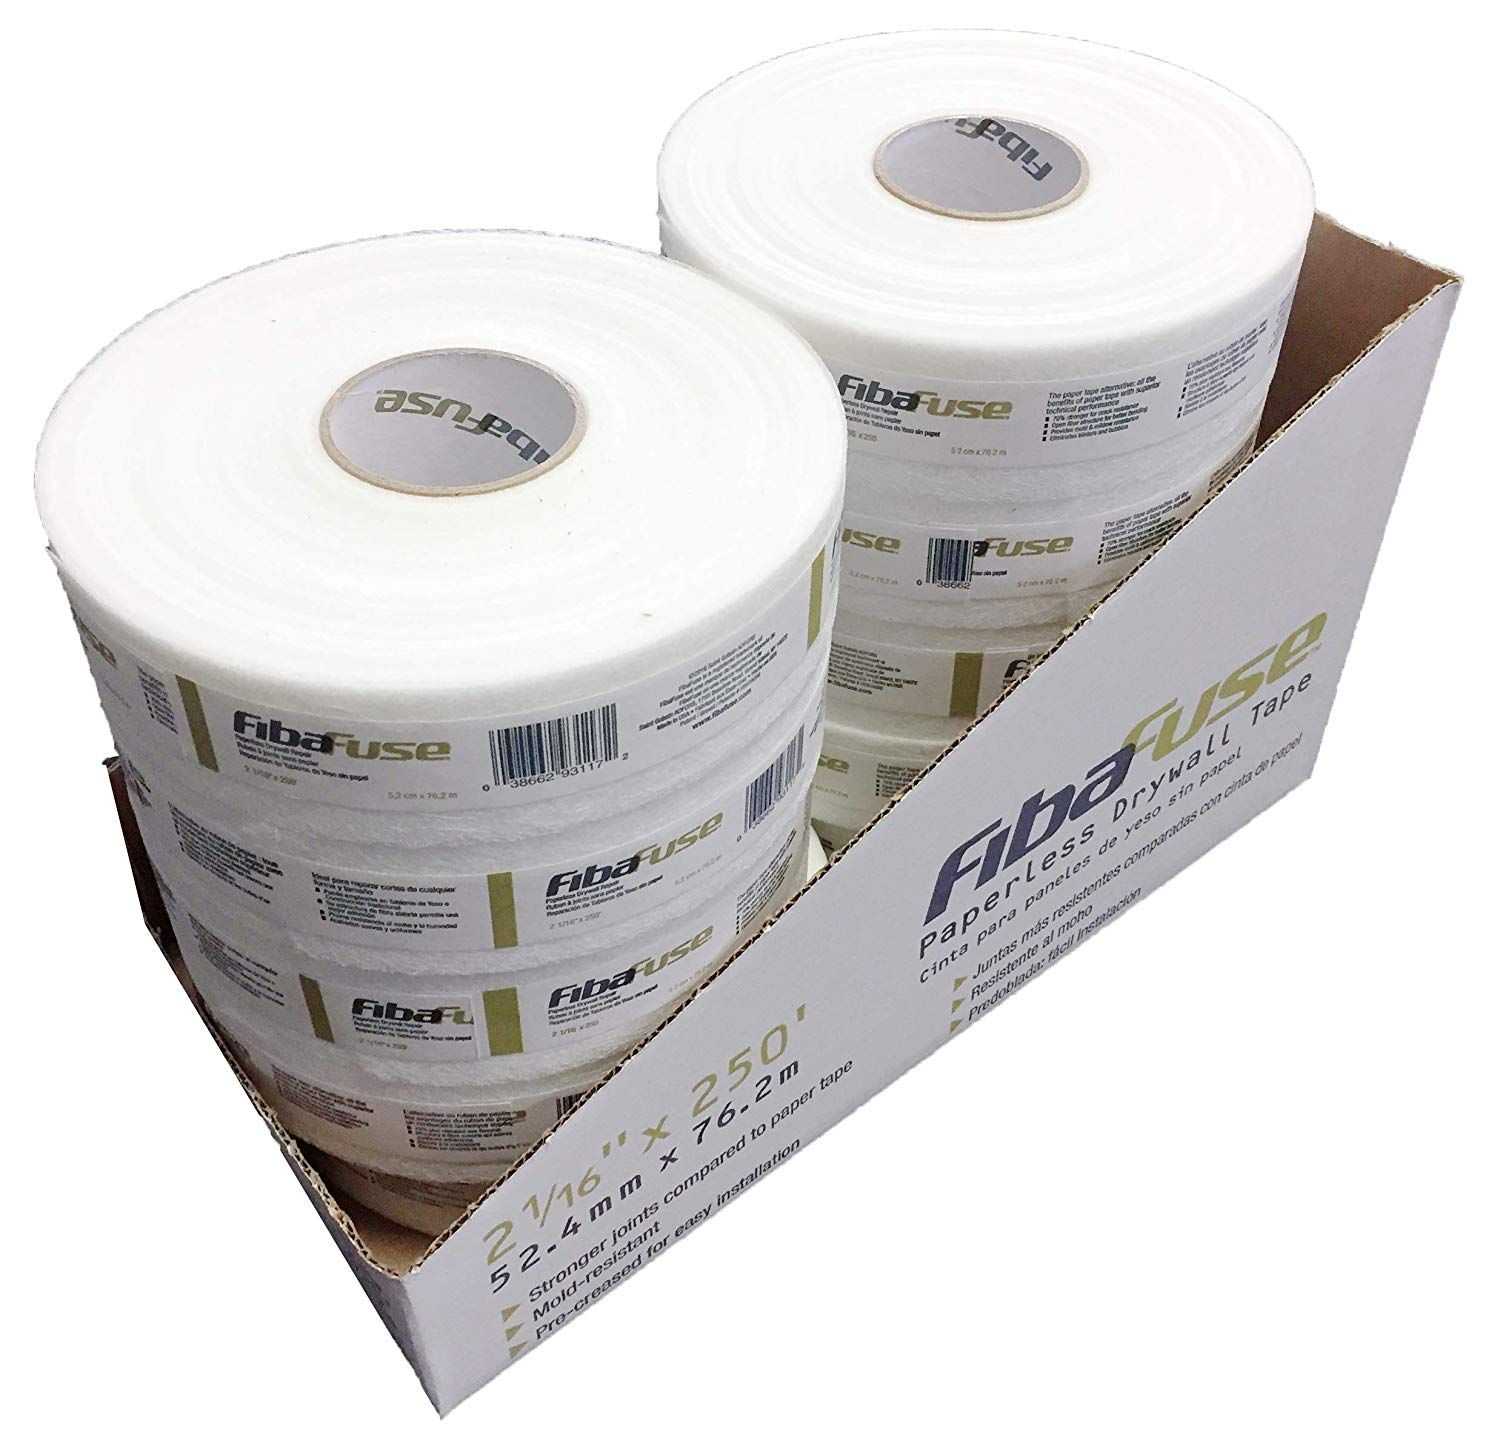 Adfors Fibafuse Fdw8652 Paperless Drywall Joint Tape 2 In X 250 Ft White Pack Of 10 Check Out This Great Product This Is An A With Images Tape Paperless 10 Things